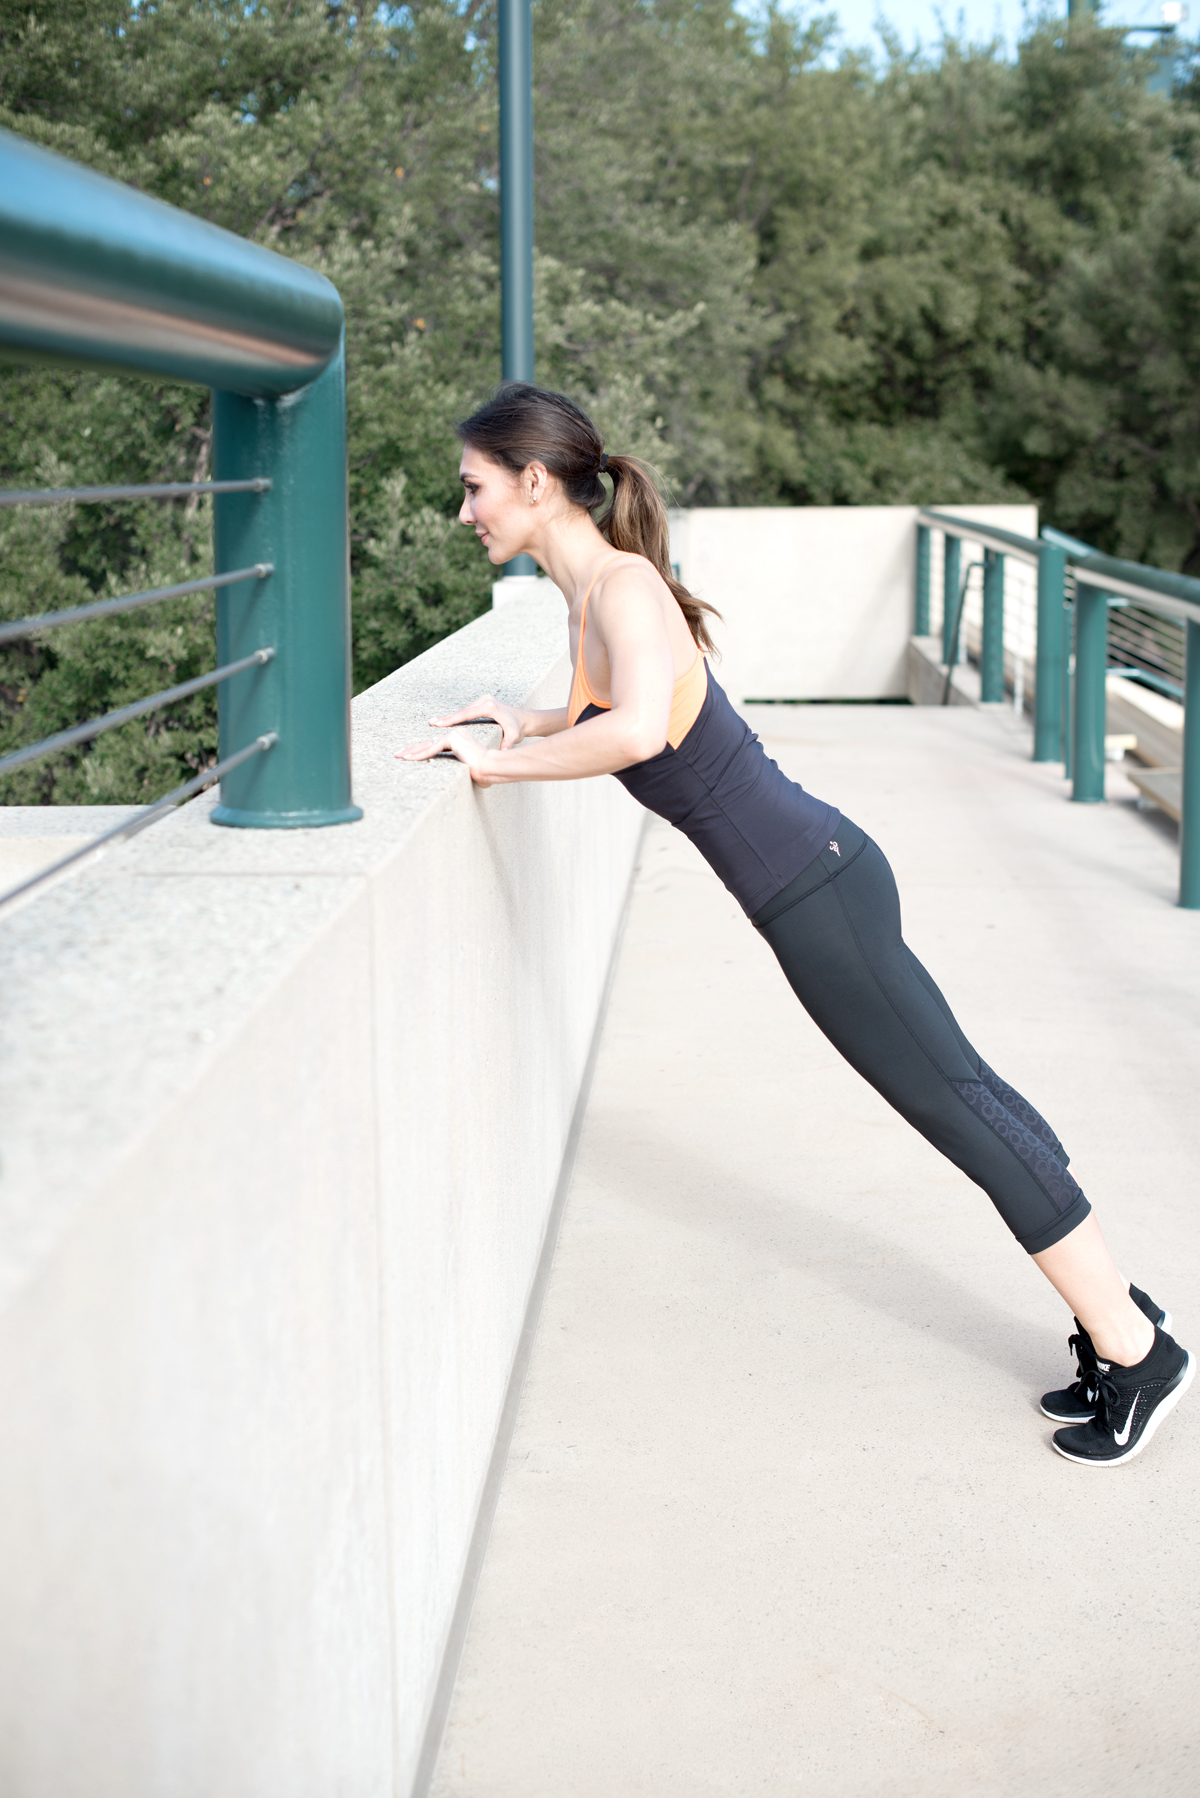 1.  Start with a railing and focus on getting your form down. Hips should be tucked under, abs pulled in, wrists should be under your shoulders, and your elbows should point slightly back. Try to engage your quads for perfect posture and for extra full body strengthening.